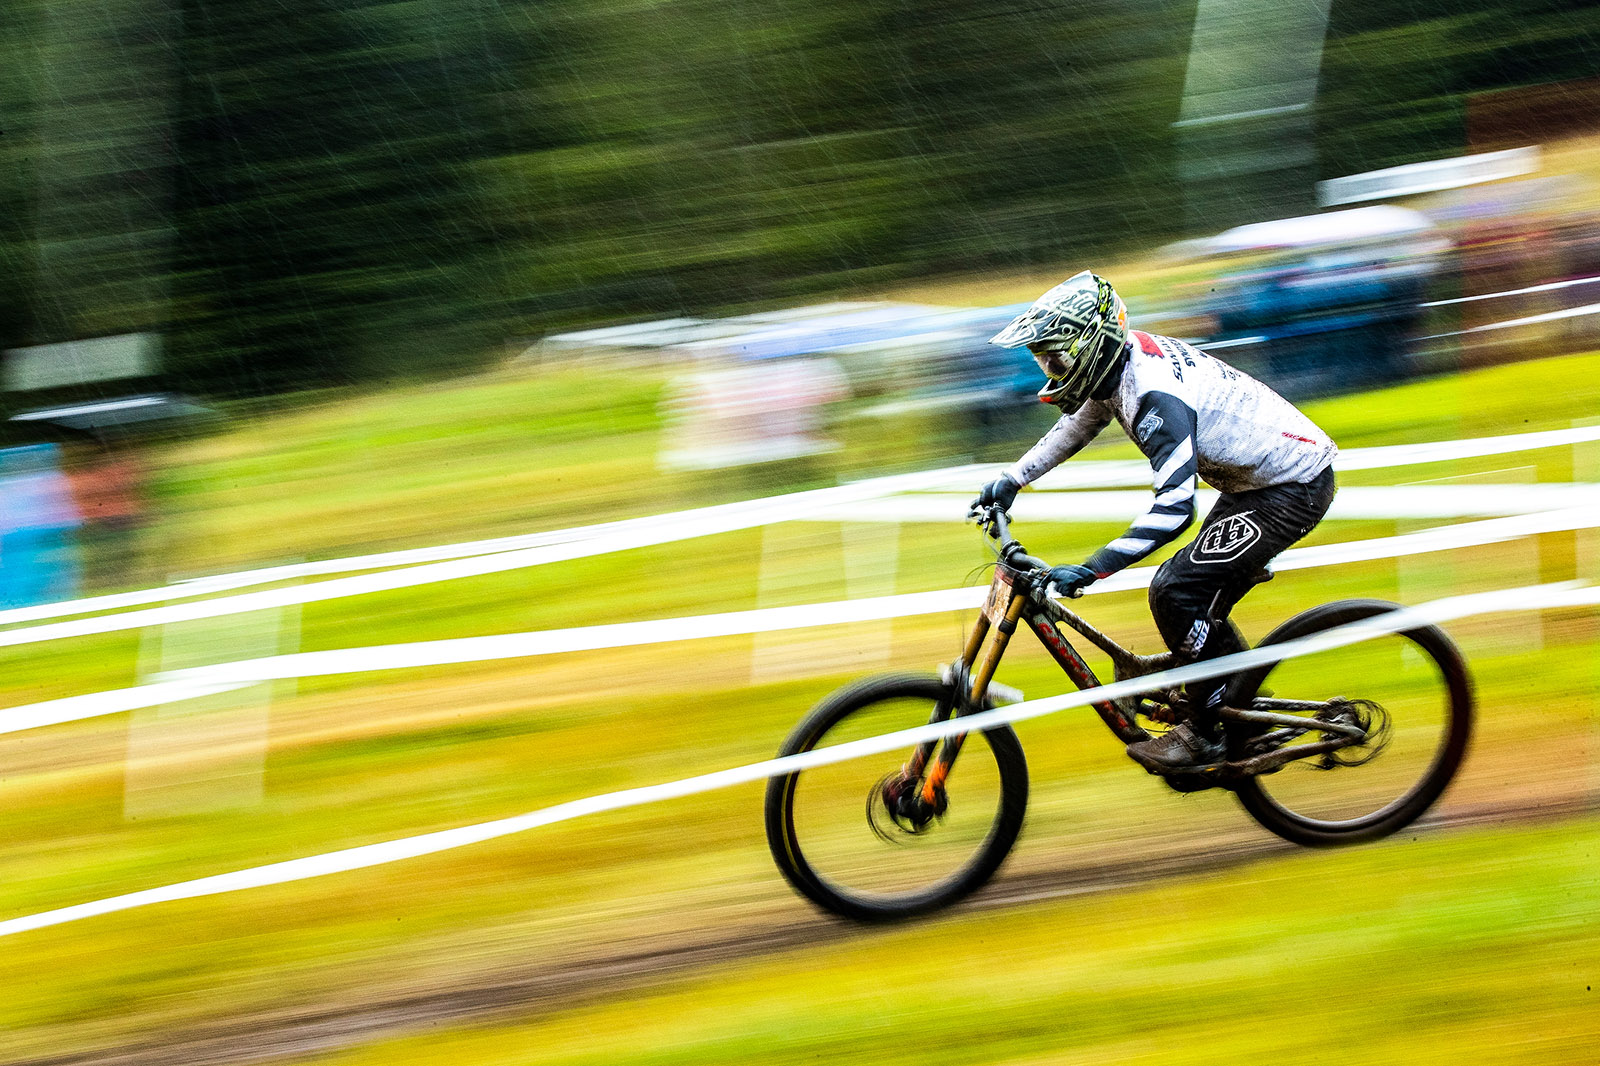 Santa Cruz Bicycles - La Bresse World Cup - 2018